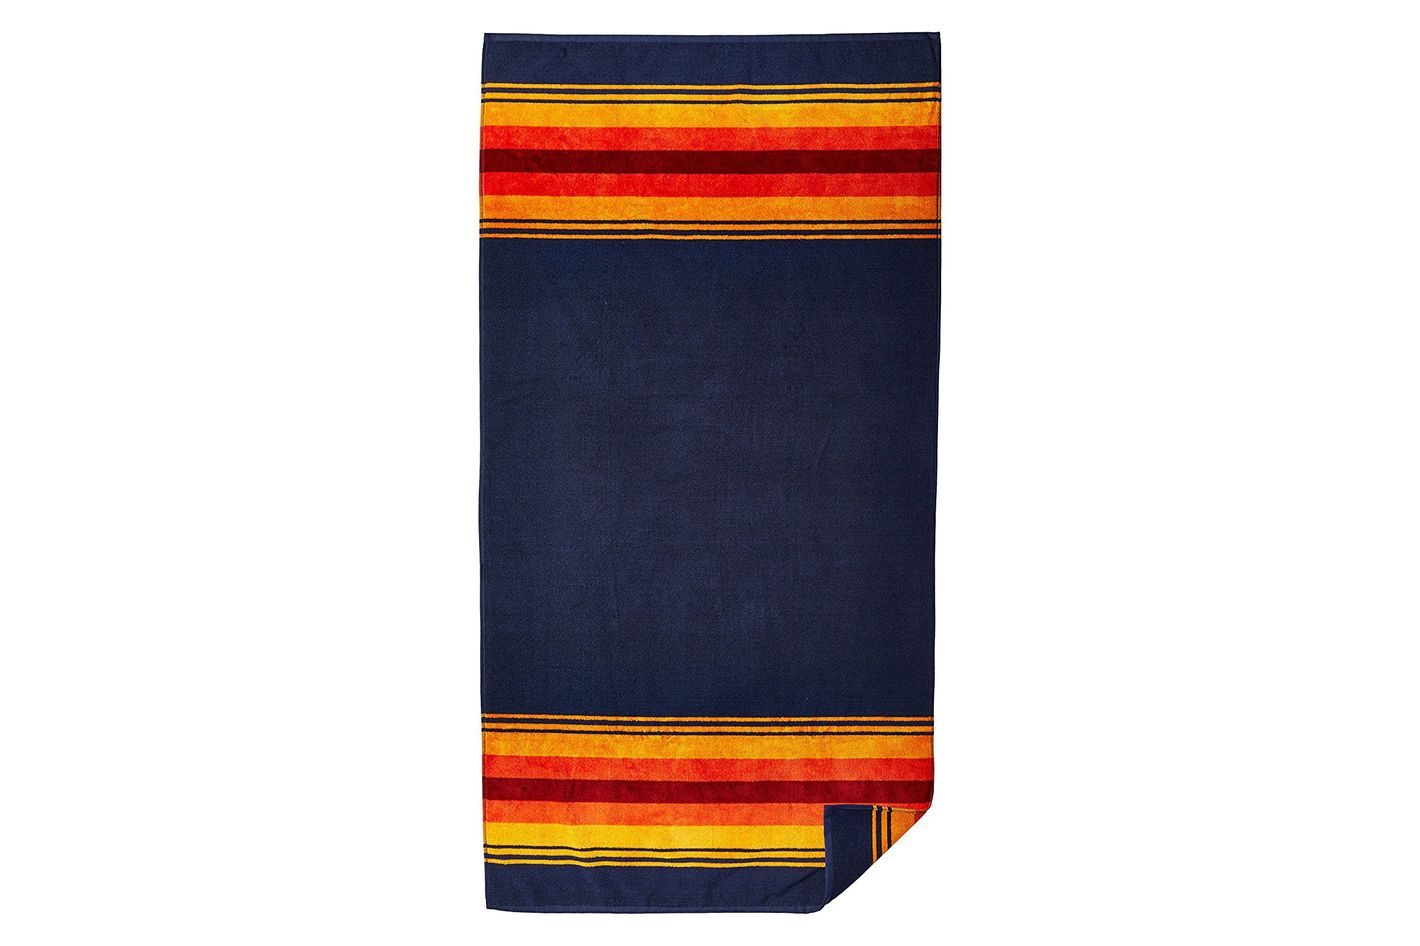 Pendleton National Park Bath Towel in Grand Canyon